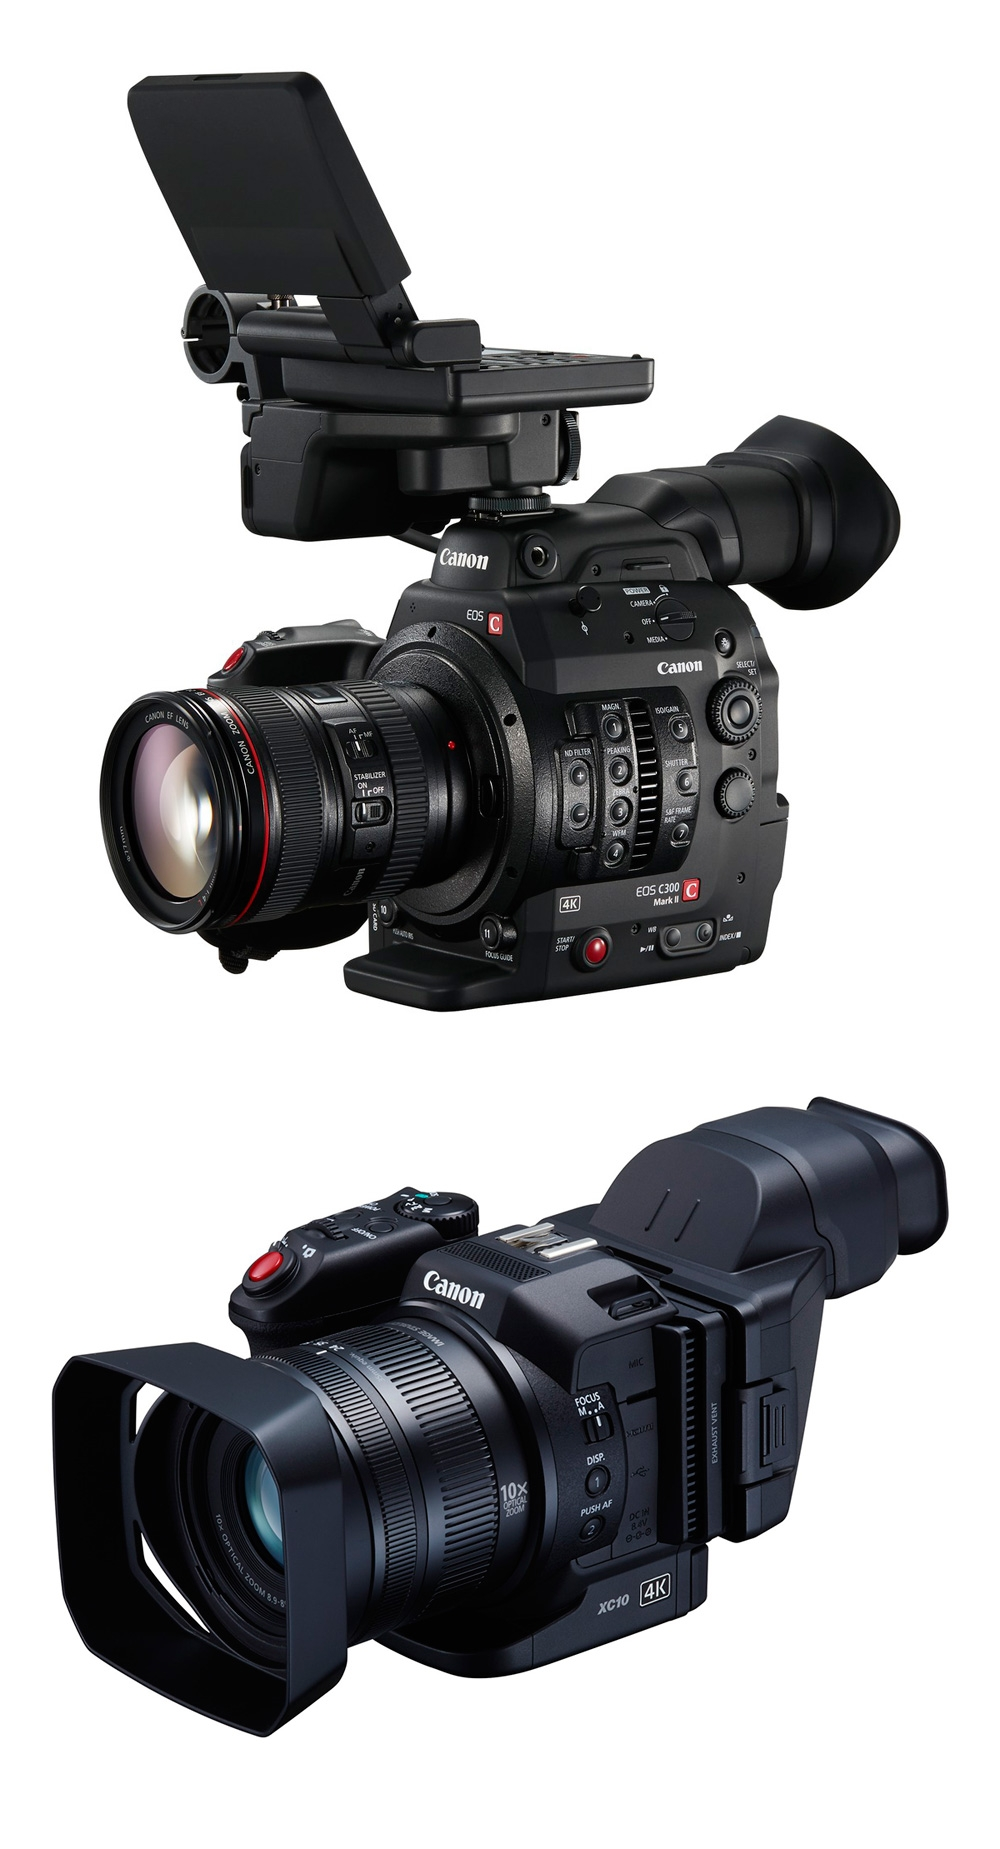 Canon EOS C300 Mark II and XC10: new 4K cameras debut - Digital Arts